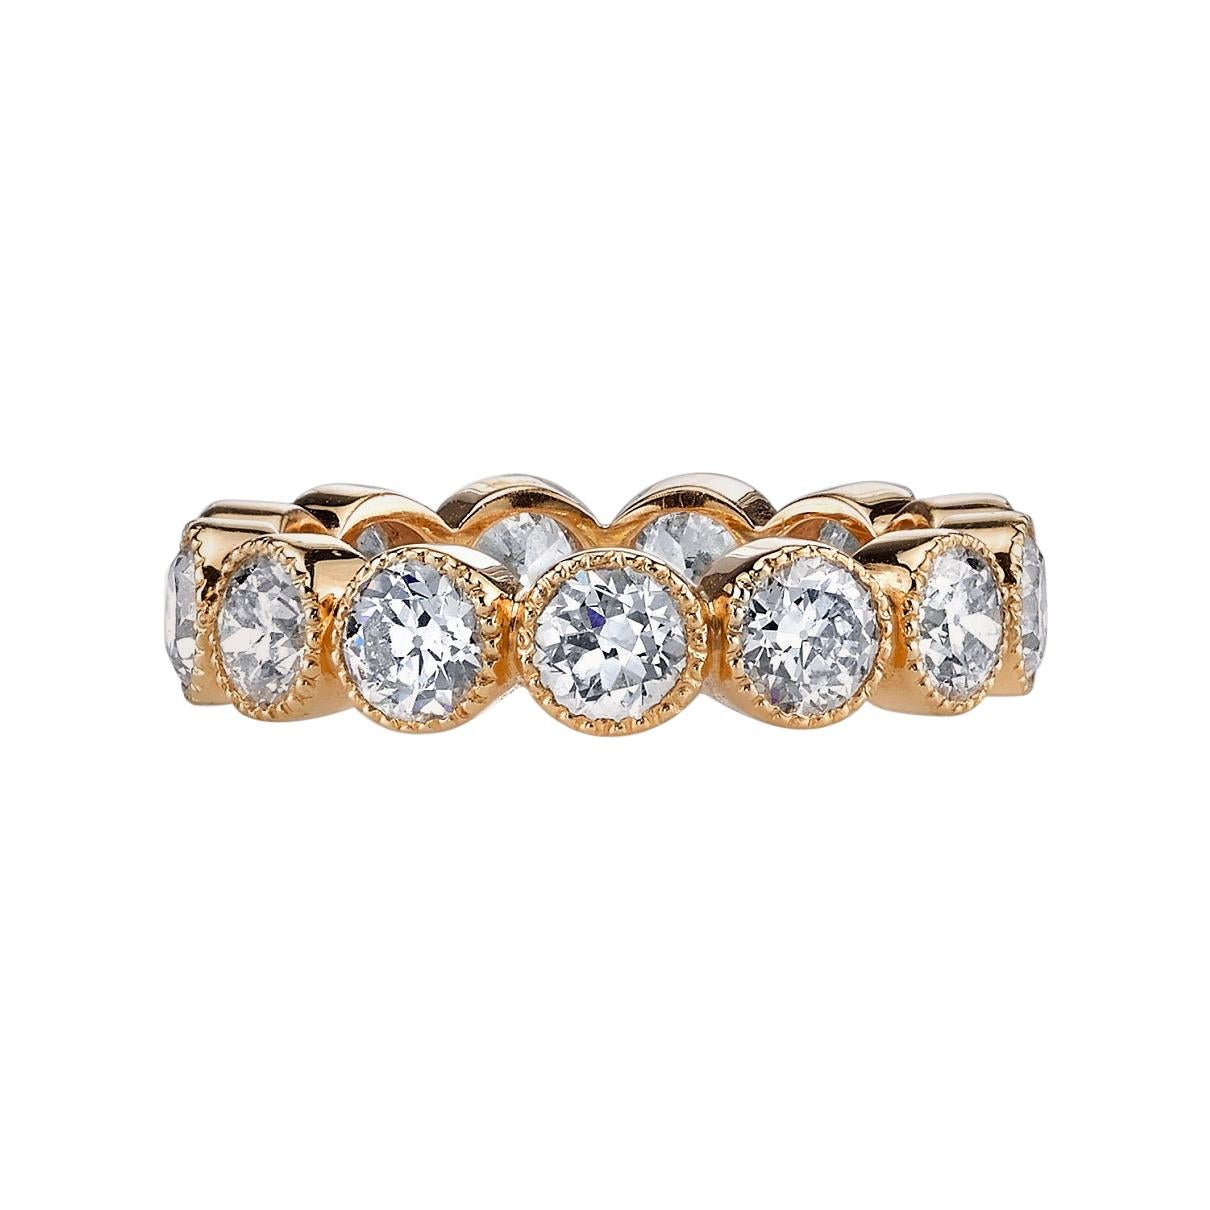 Old European Cut Diamonds Set in a Handcrafted Gold Eternity Band